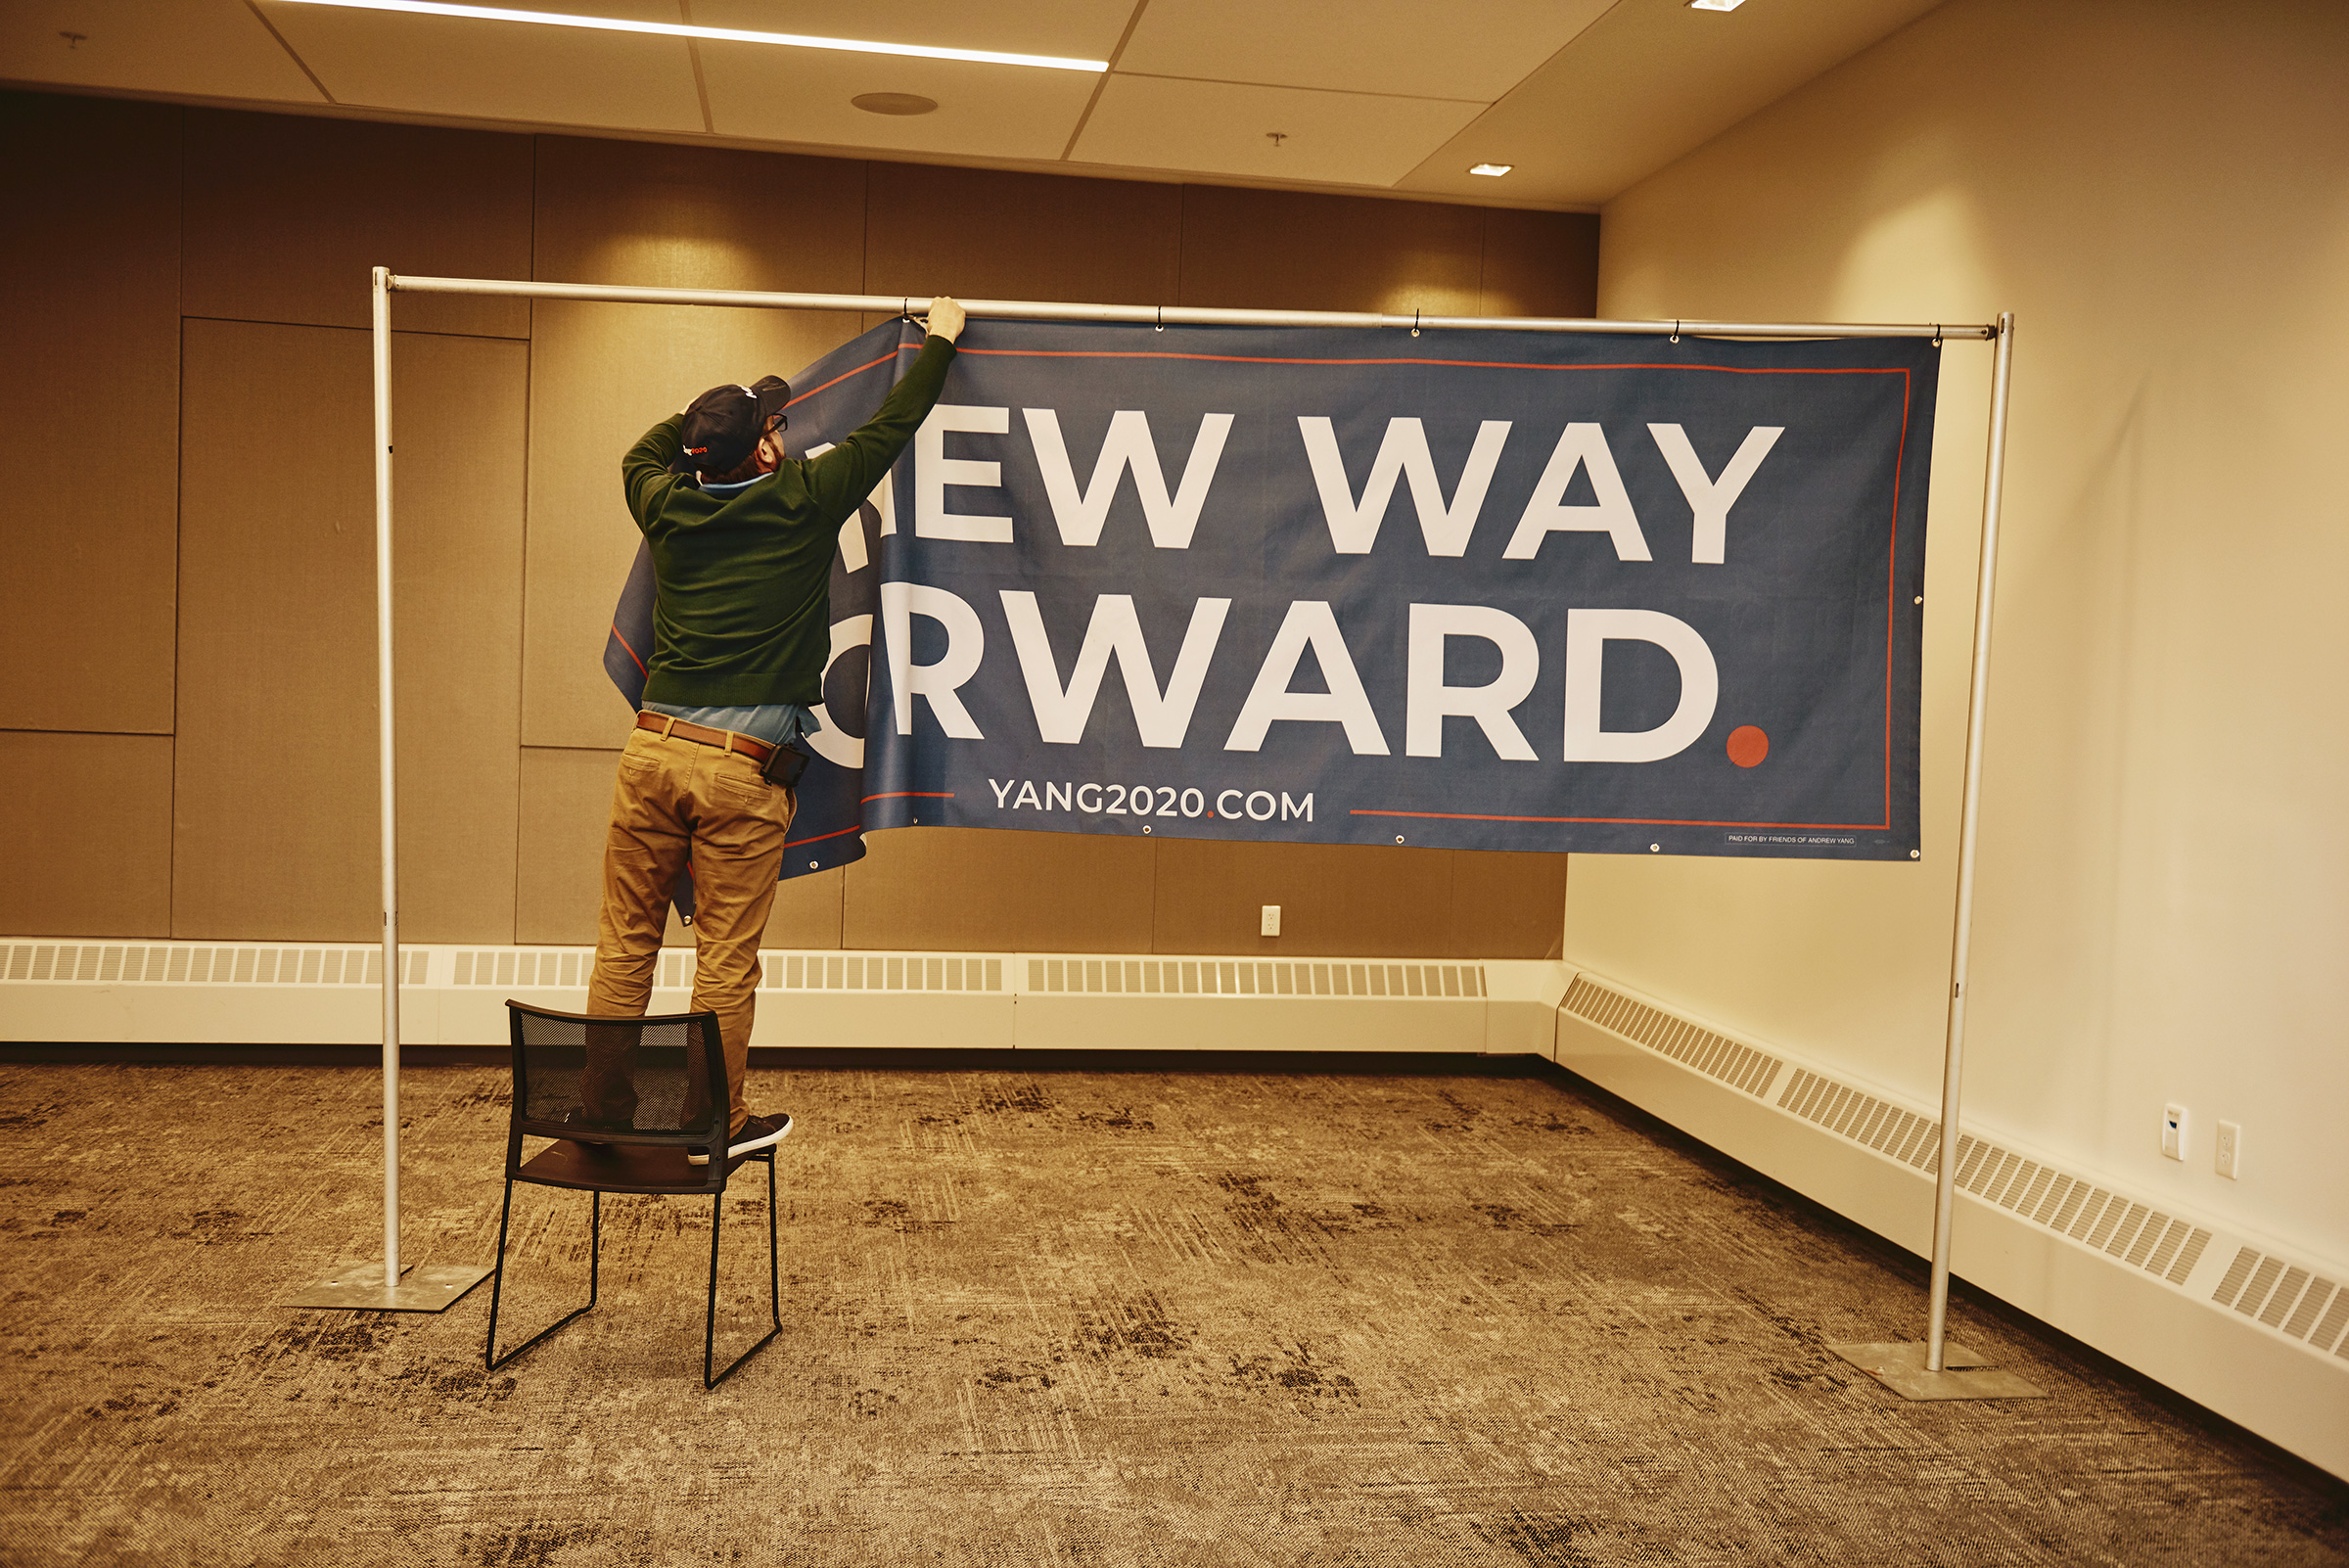 A worker packs up a banner for Andrew Yang's campaign at the Merrill Place Conference Center at Plymouth State University in Plymouth, N.H. on Feb. 6, 2020.